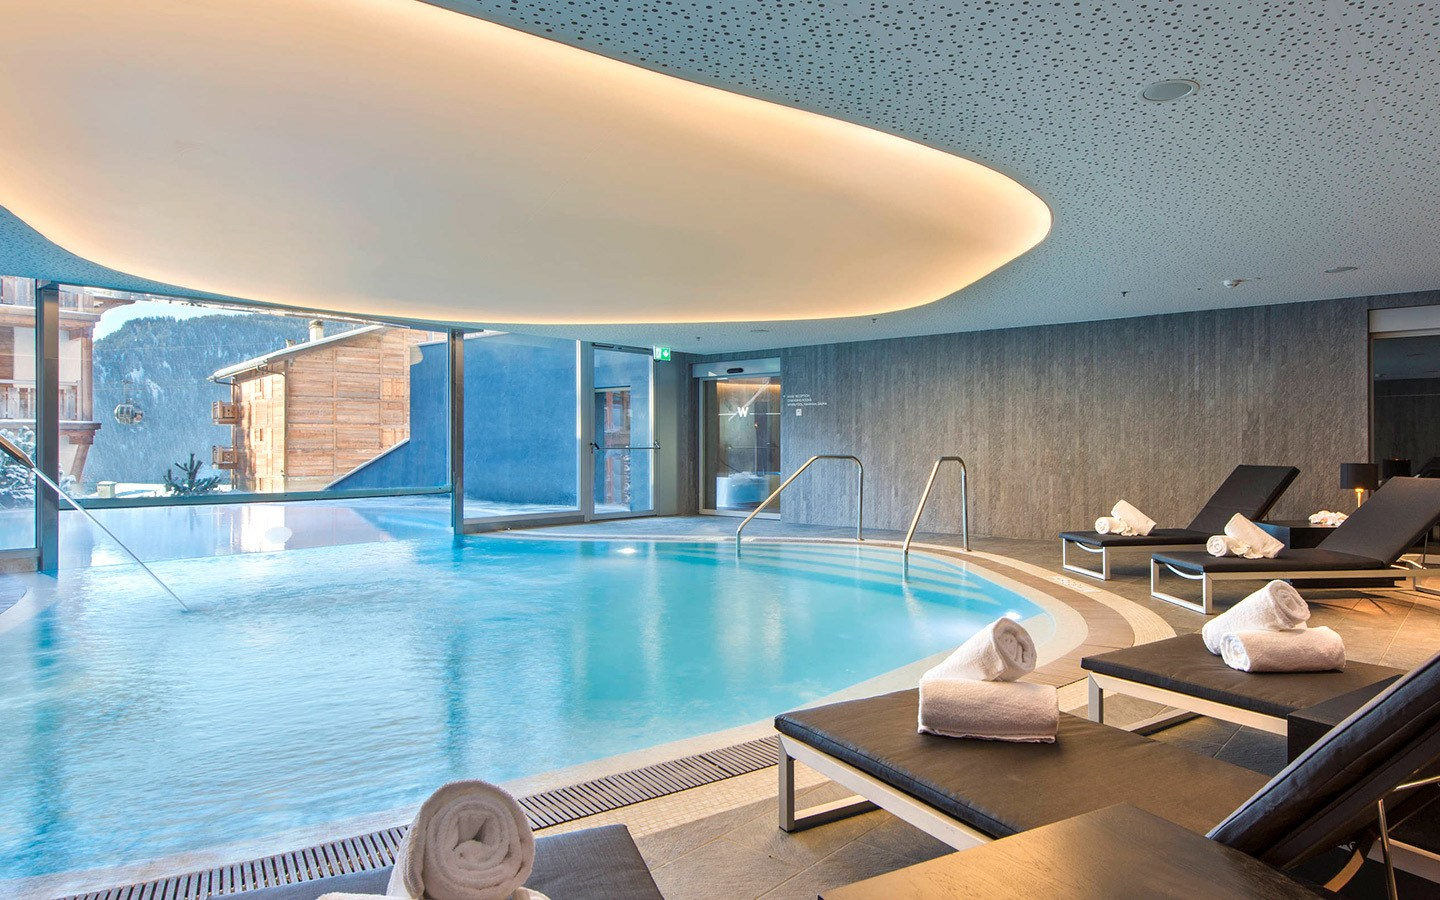 Indoor/outdoor swimming pool and spa at the W Verbier hotel